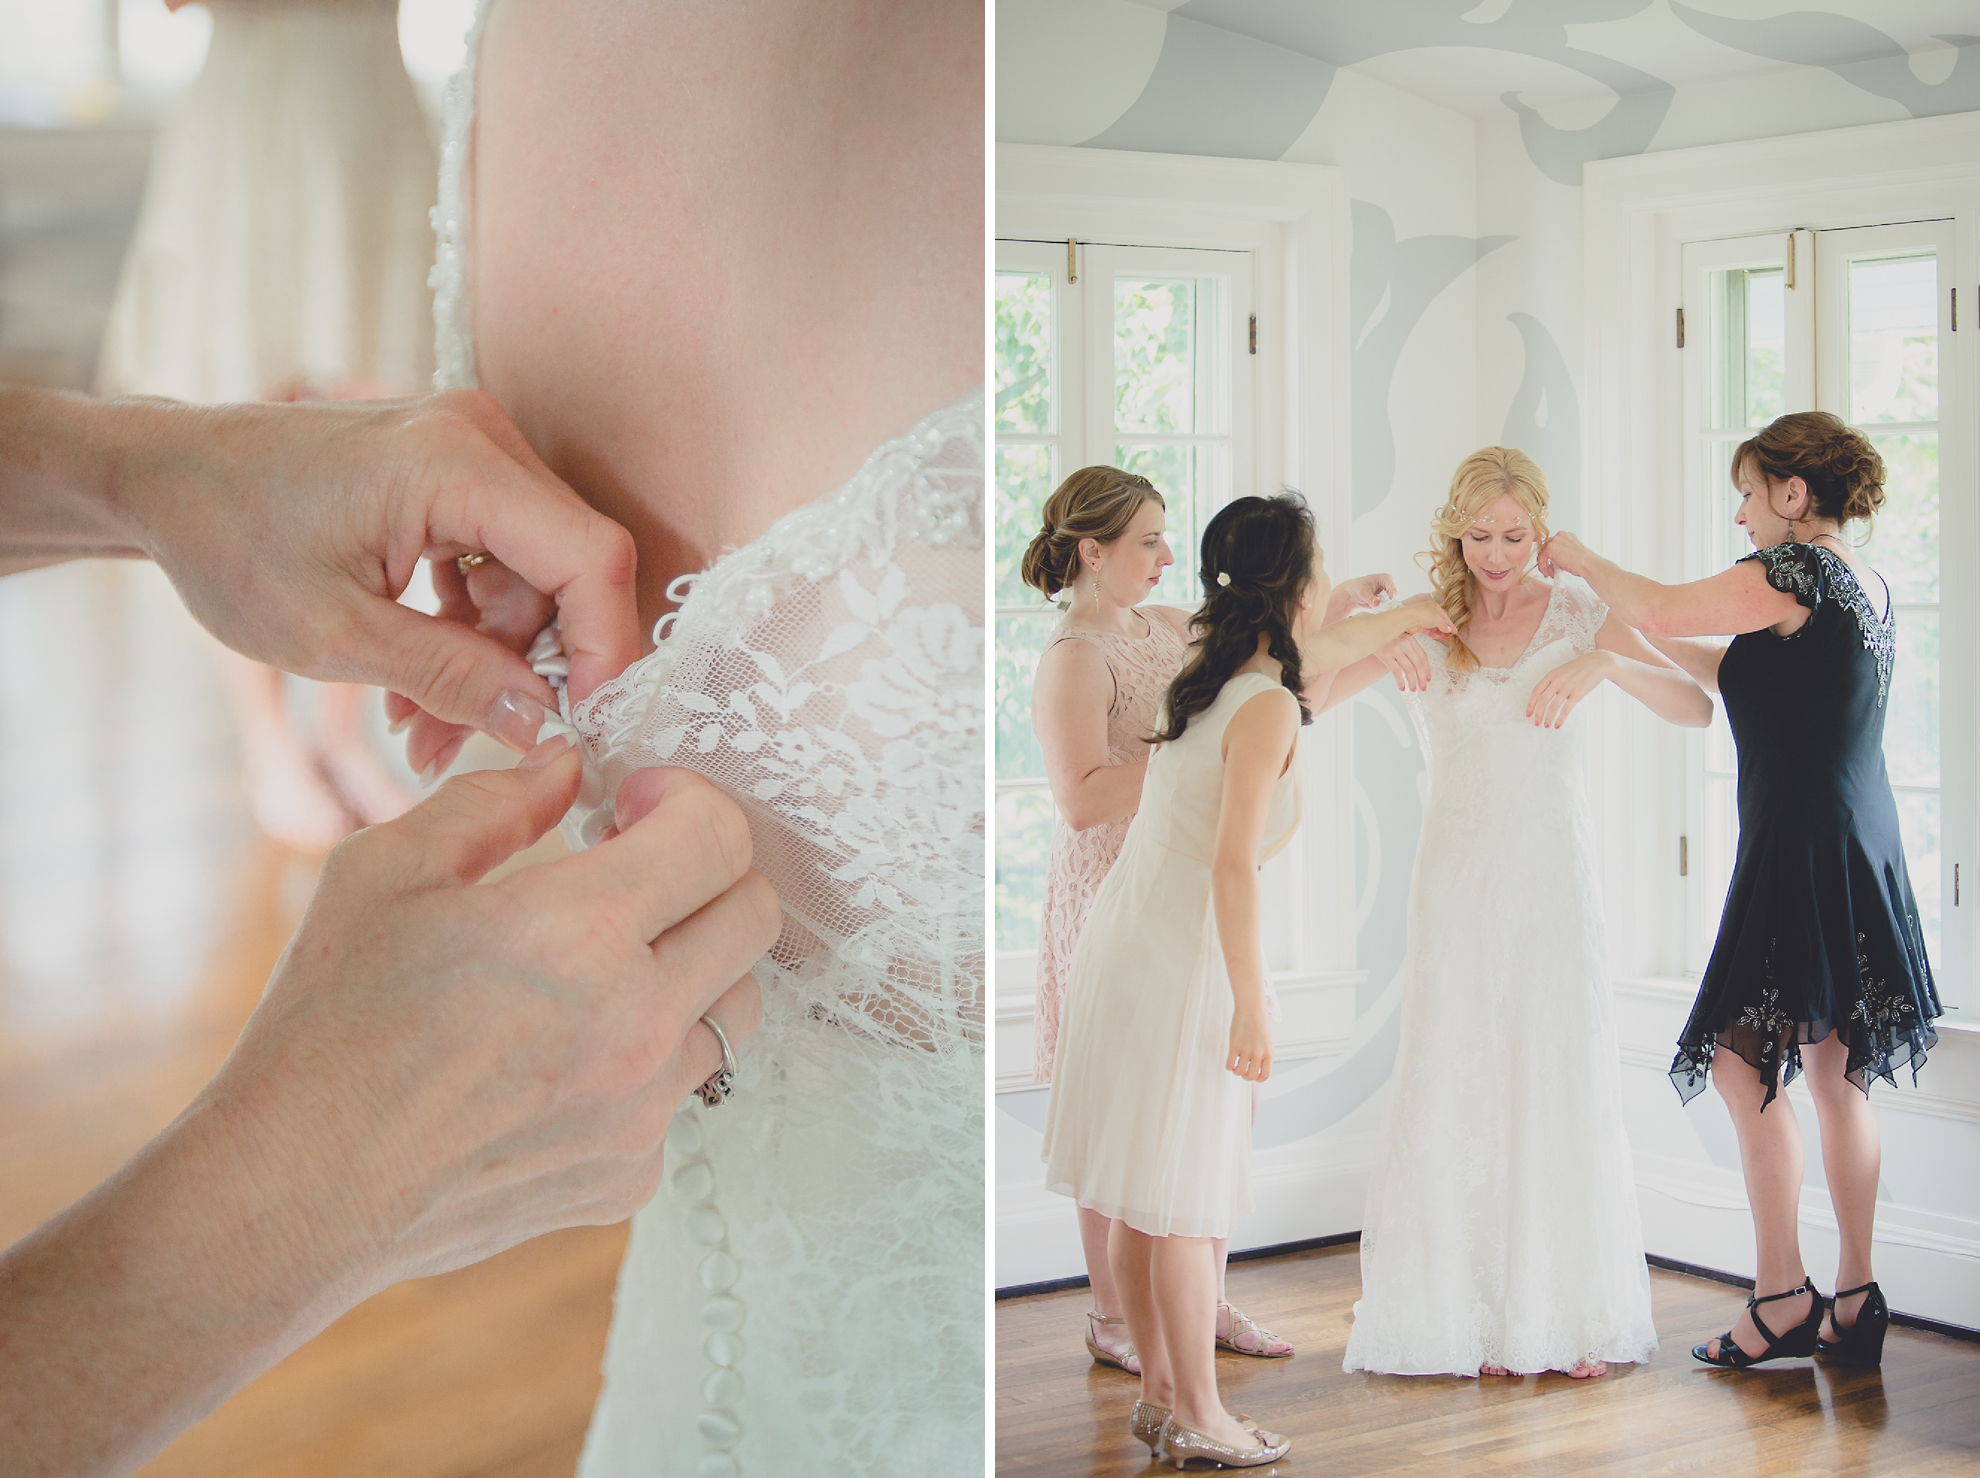 mother of bride and bridesmaids help bride get ready in secret room at small wedding at Knox Farm near Buffalo, NY